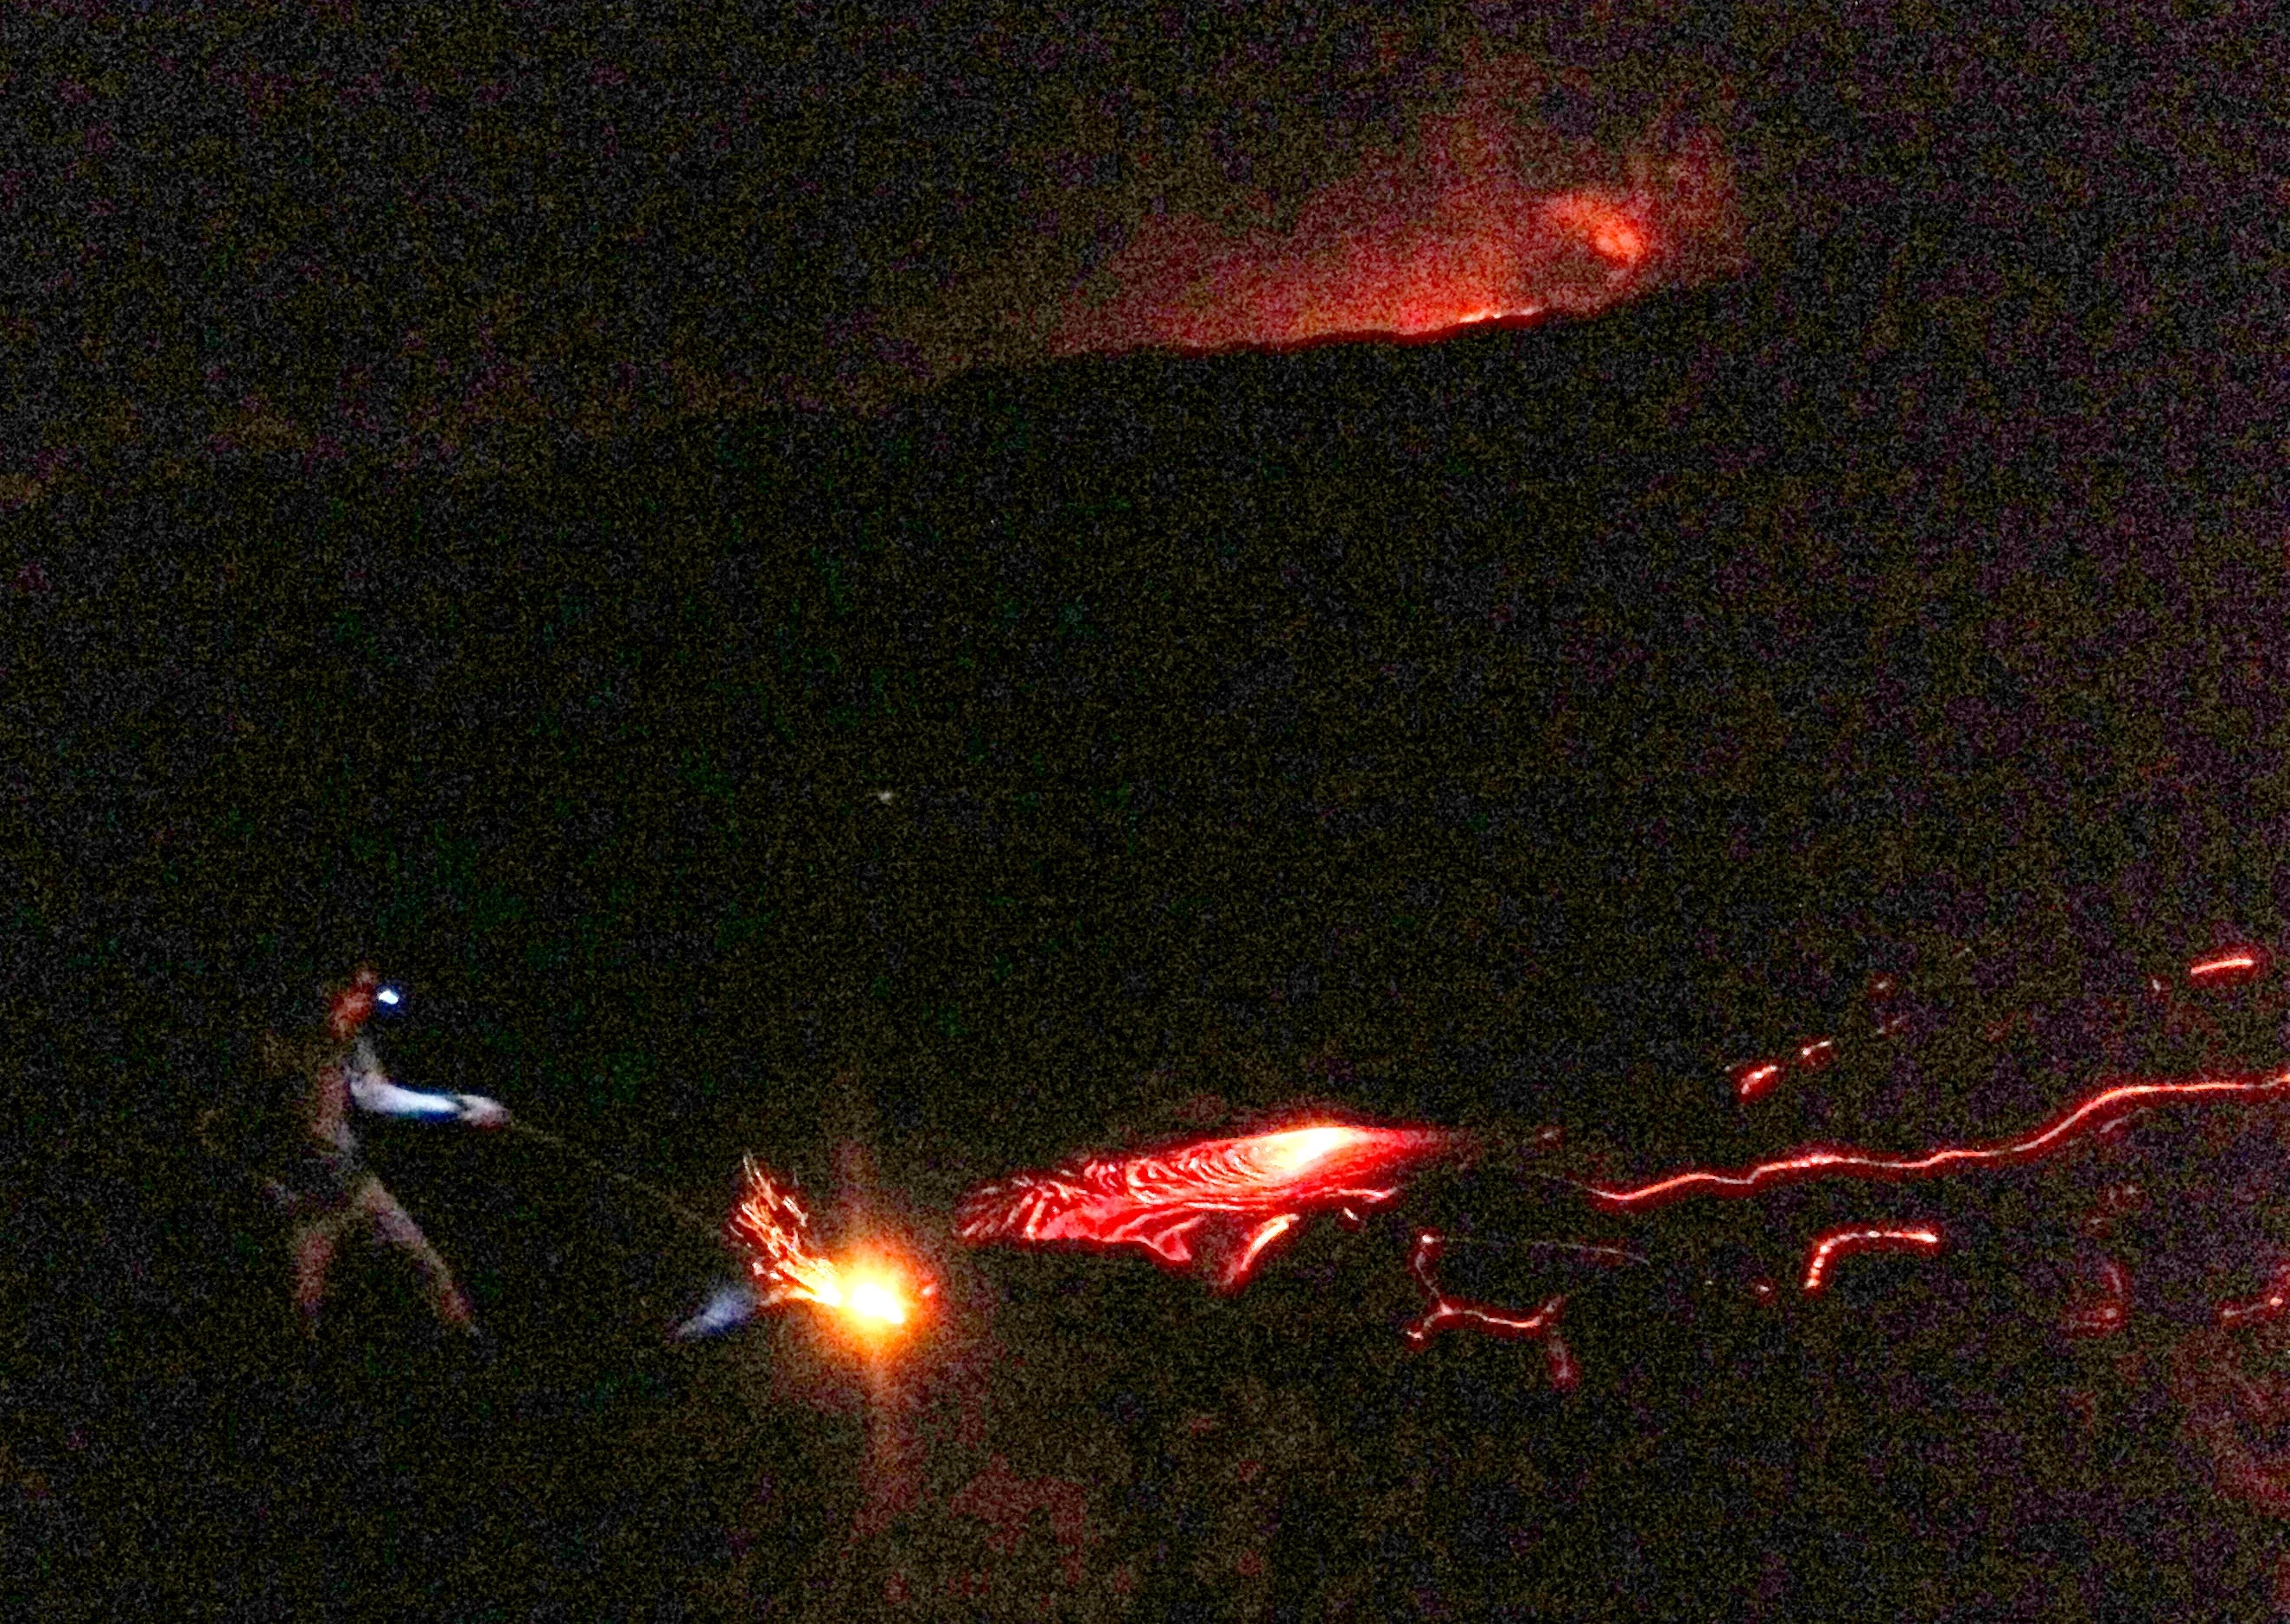 Jack playing with the lava flow. The steam at the top right background is where the lava meets the ocean.